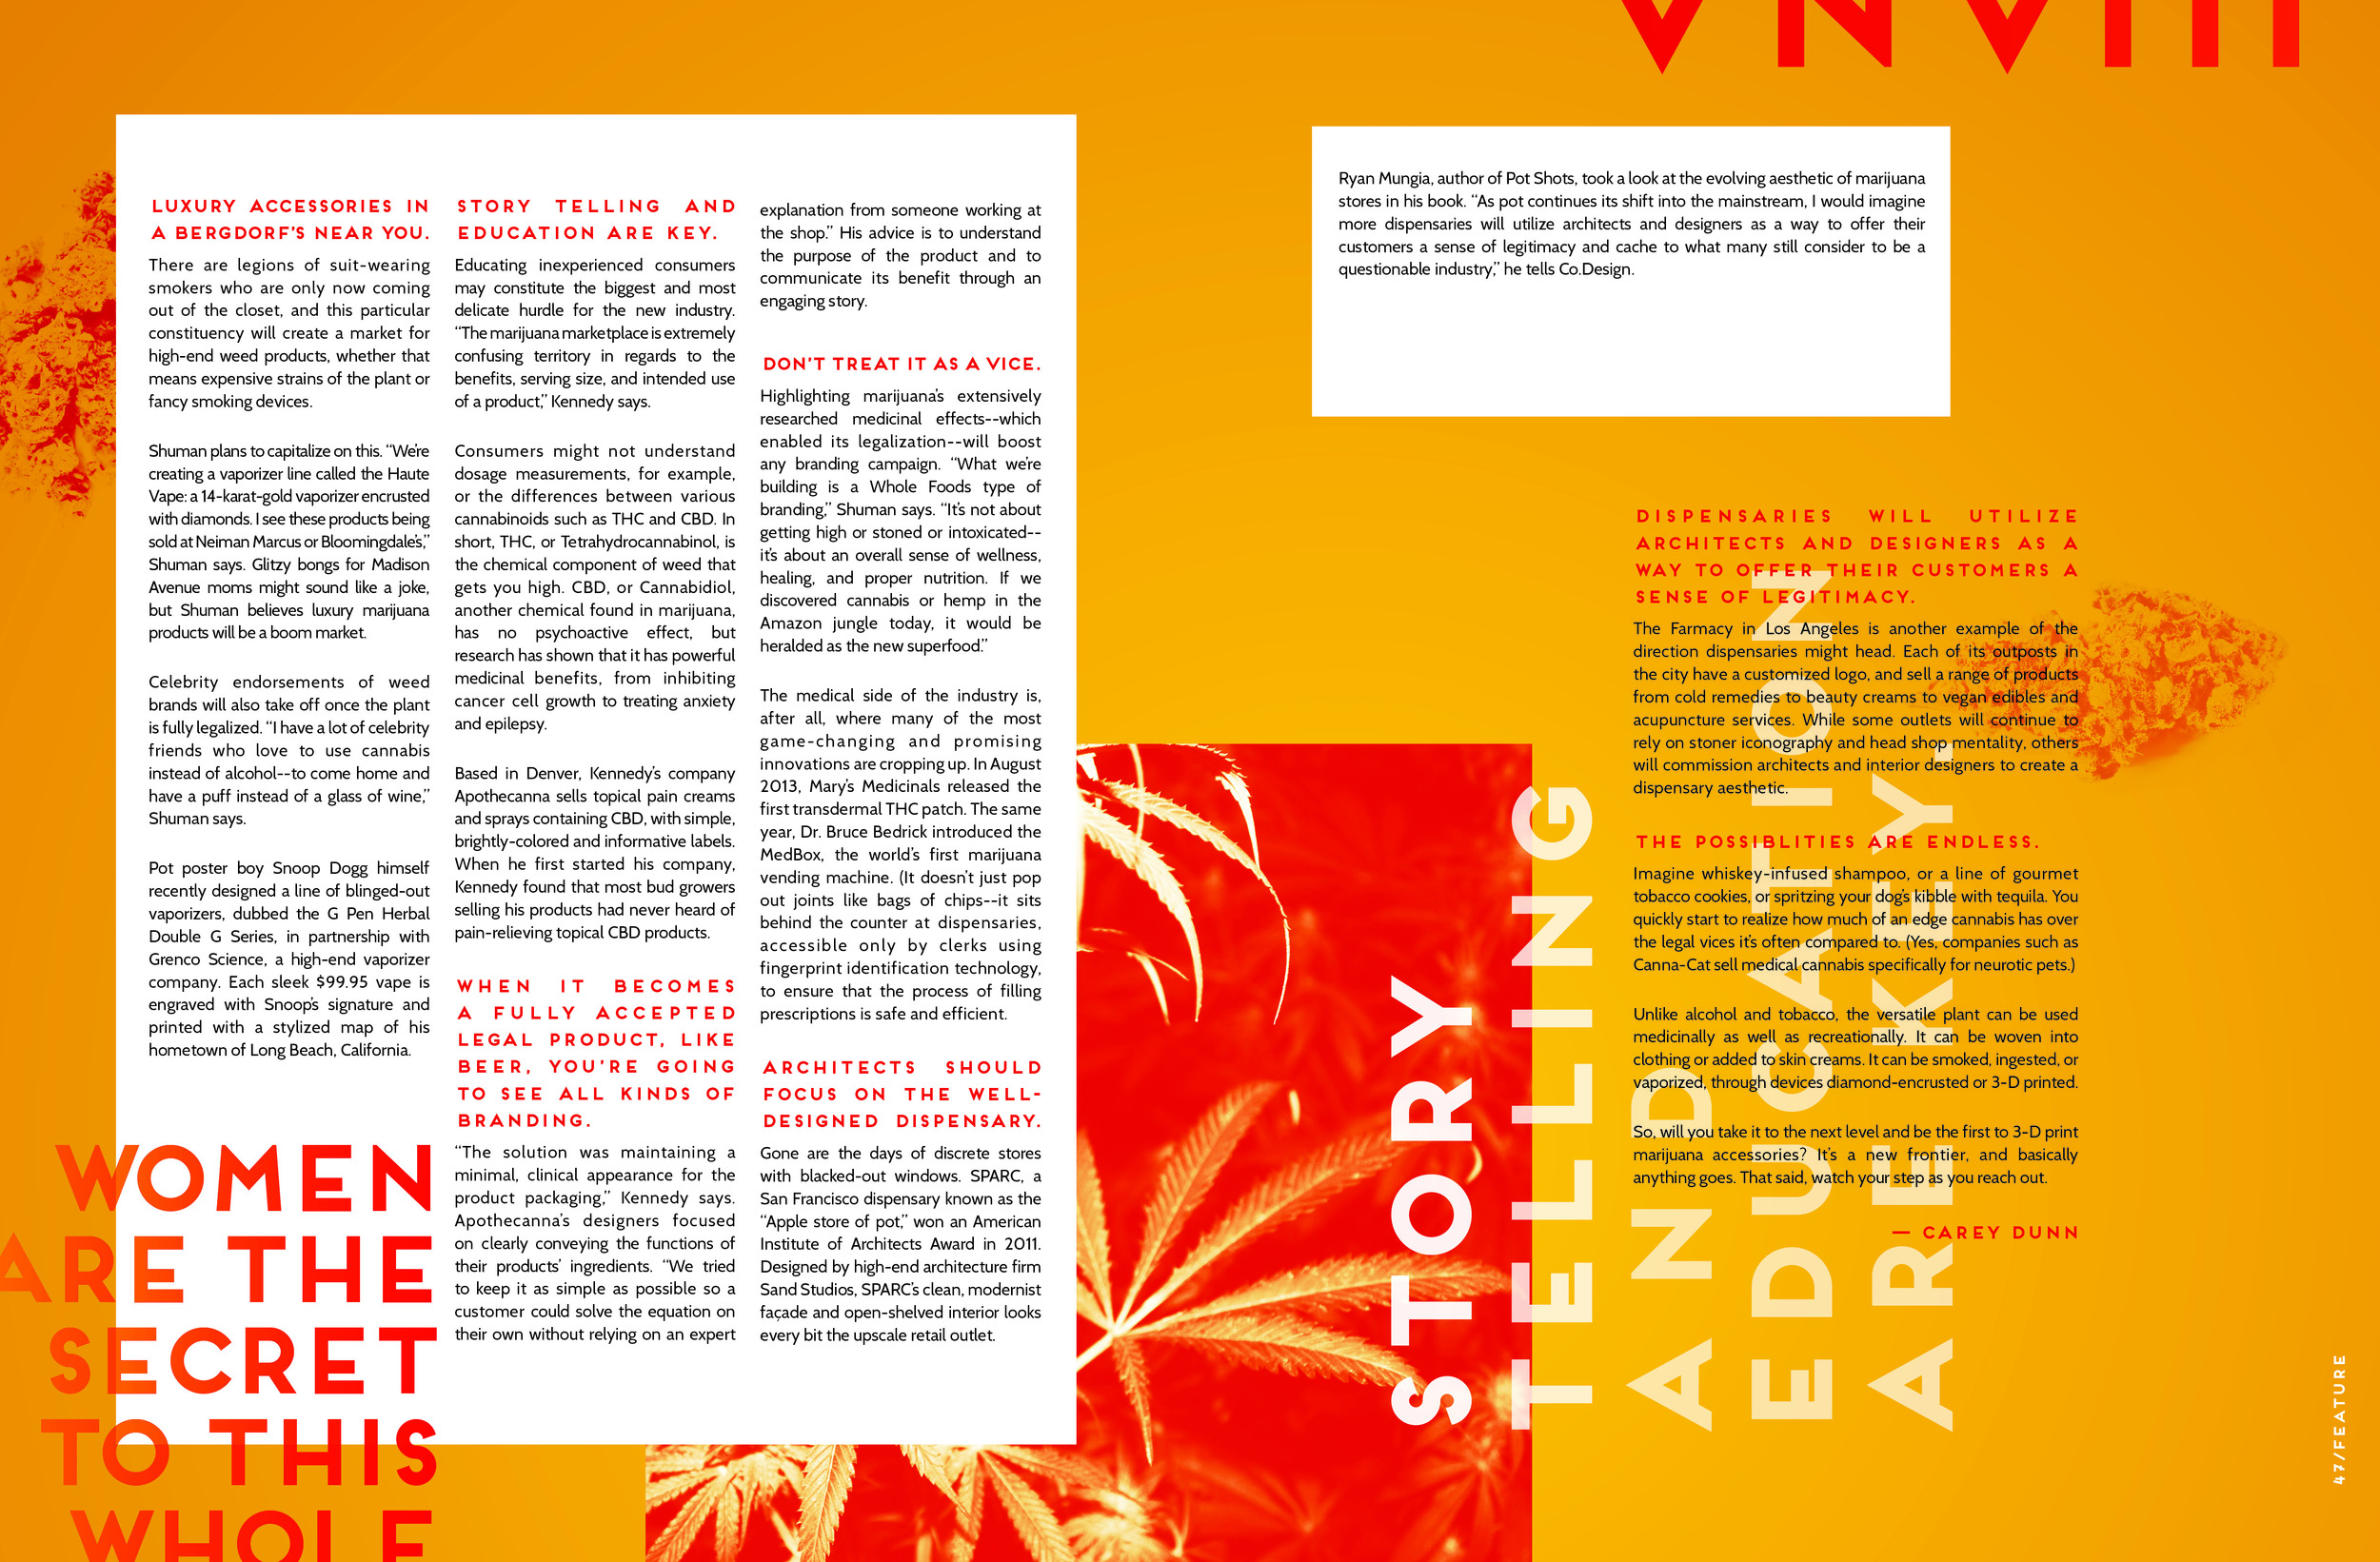 magazine_cannpack_layout_spreads6.jpg